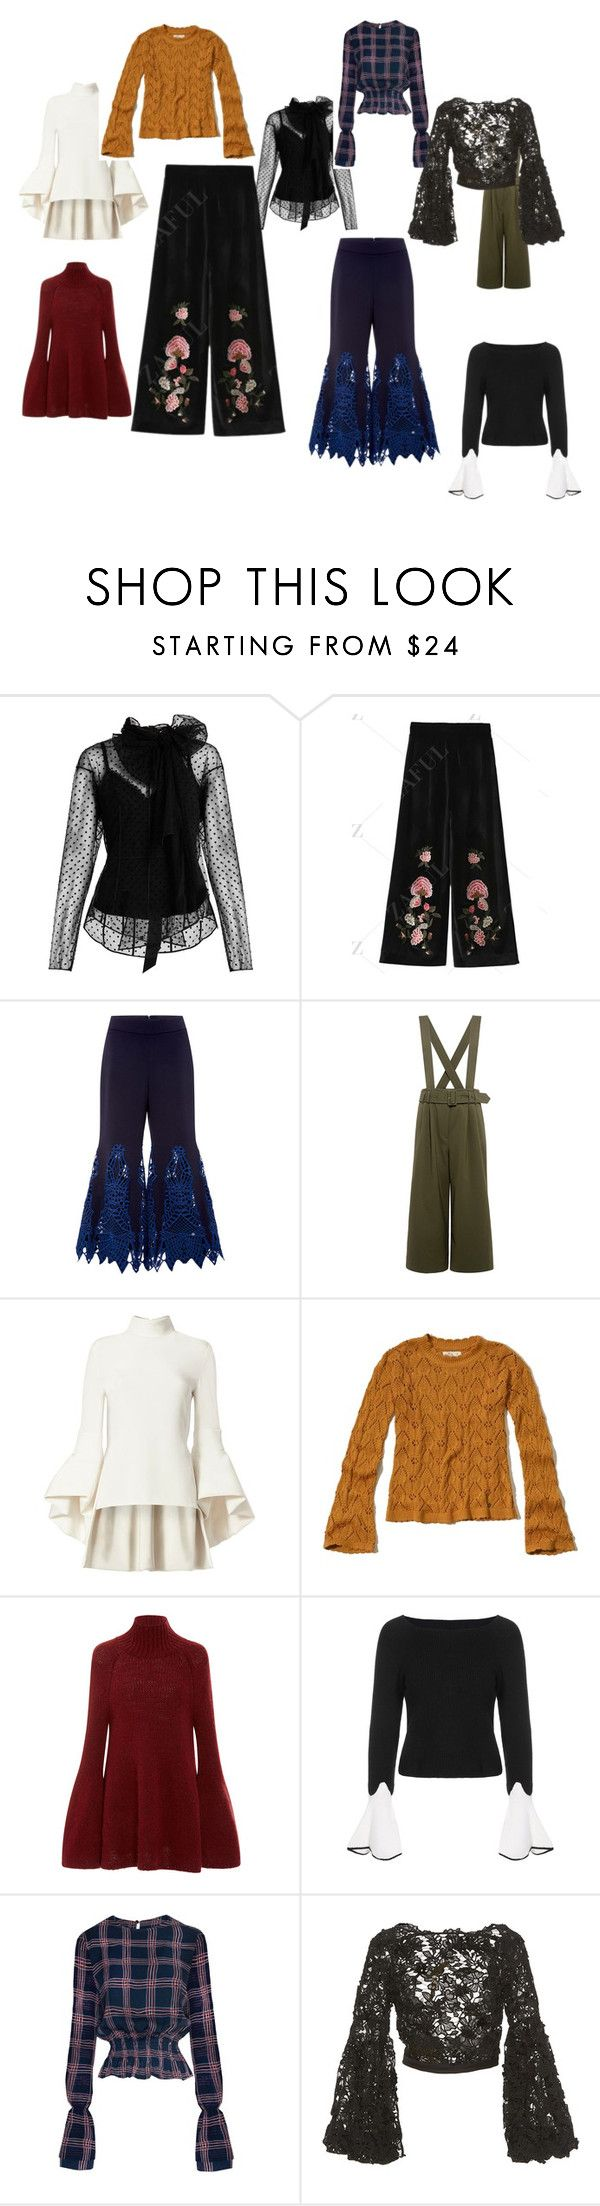 """Untitled #13"" by stapleluc on Polyvore featuring Marc Jacobs, Jonathan Simkhai, TIBI, Brandon Maxwell, Hollister Co., Rosetta Getty and Johanna Ortiz"